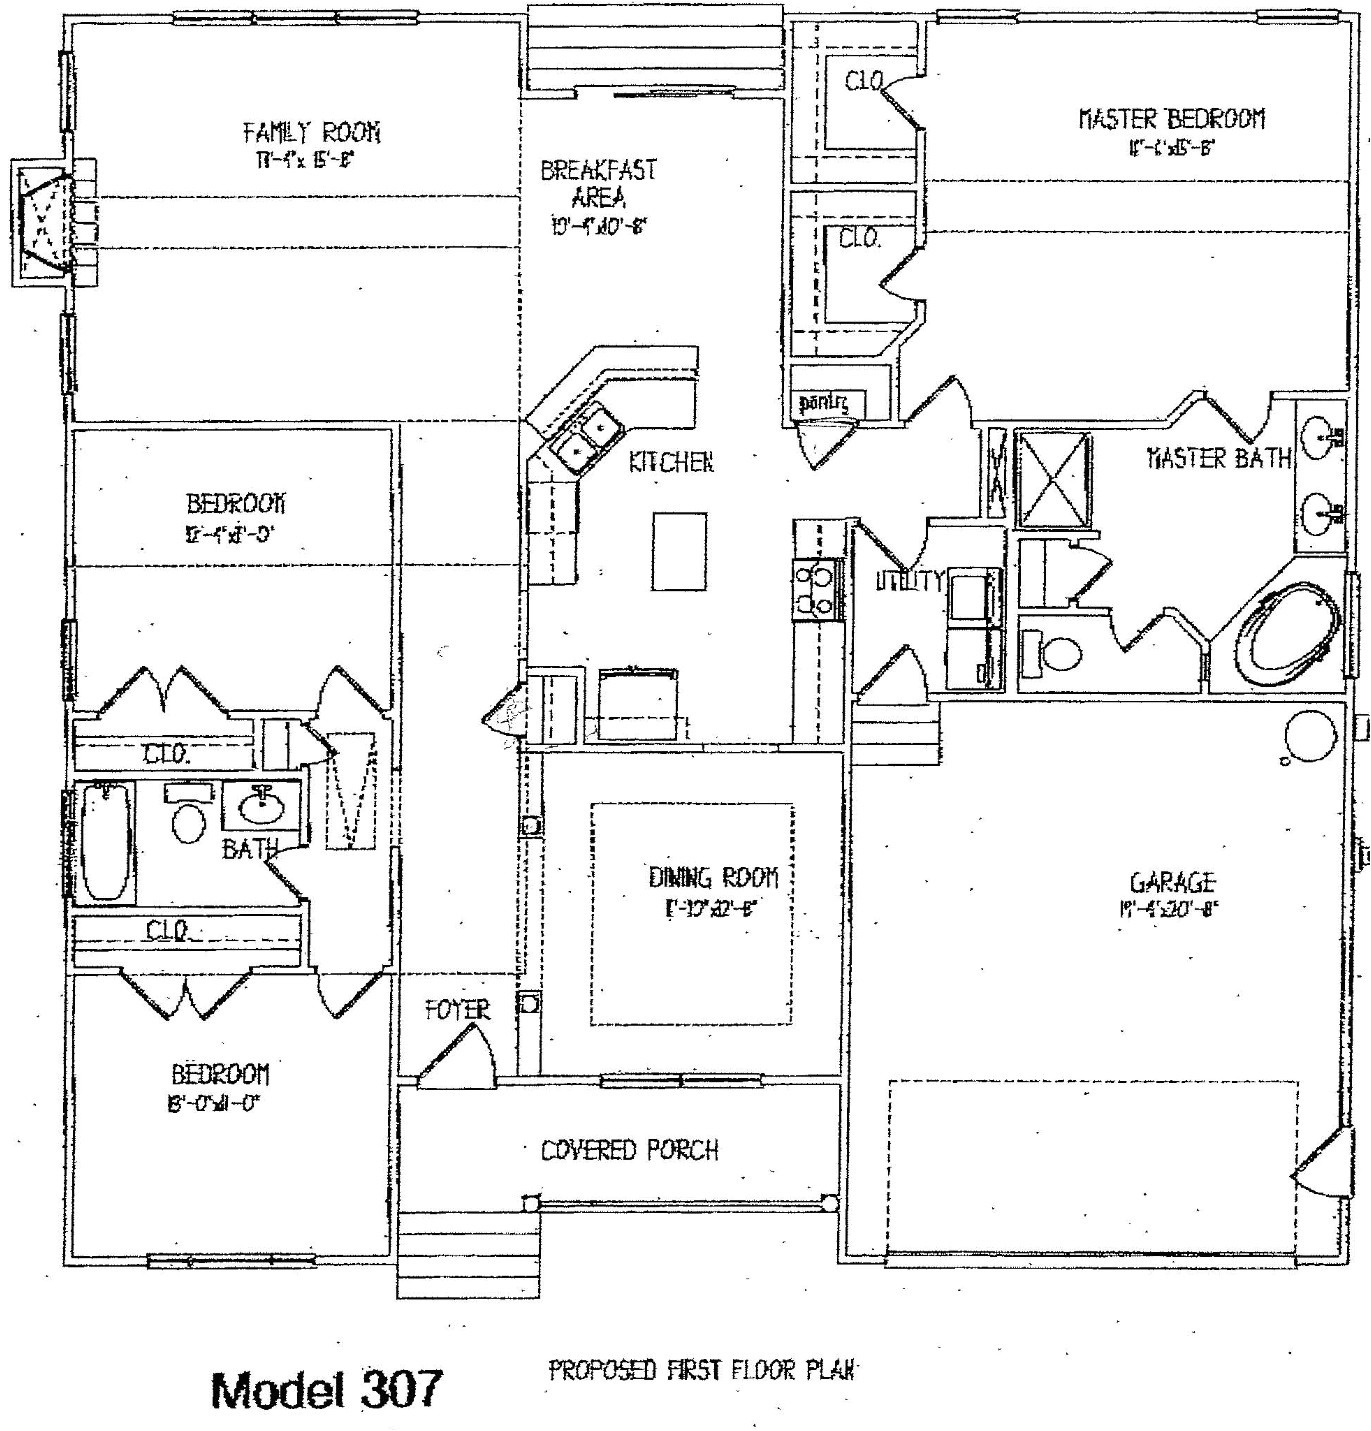 plan draw floor plans online tritmonk design photo gallery for modern bedroom interior floor plan maker construction moving s